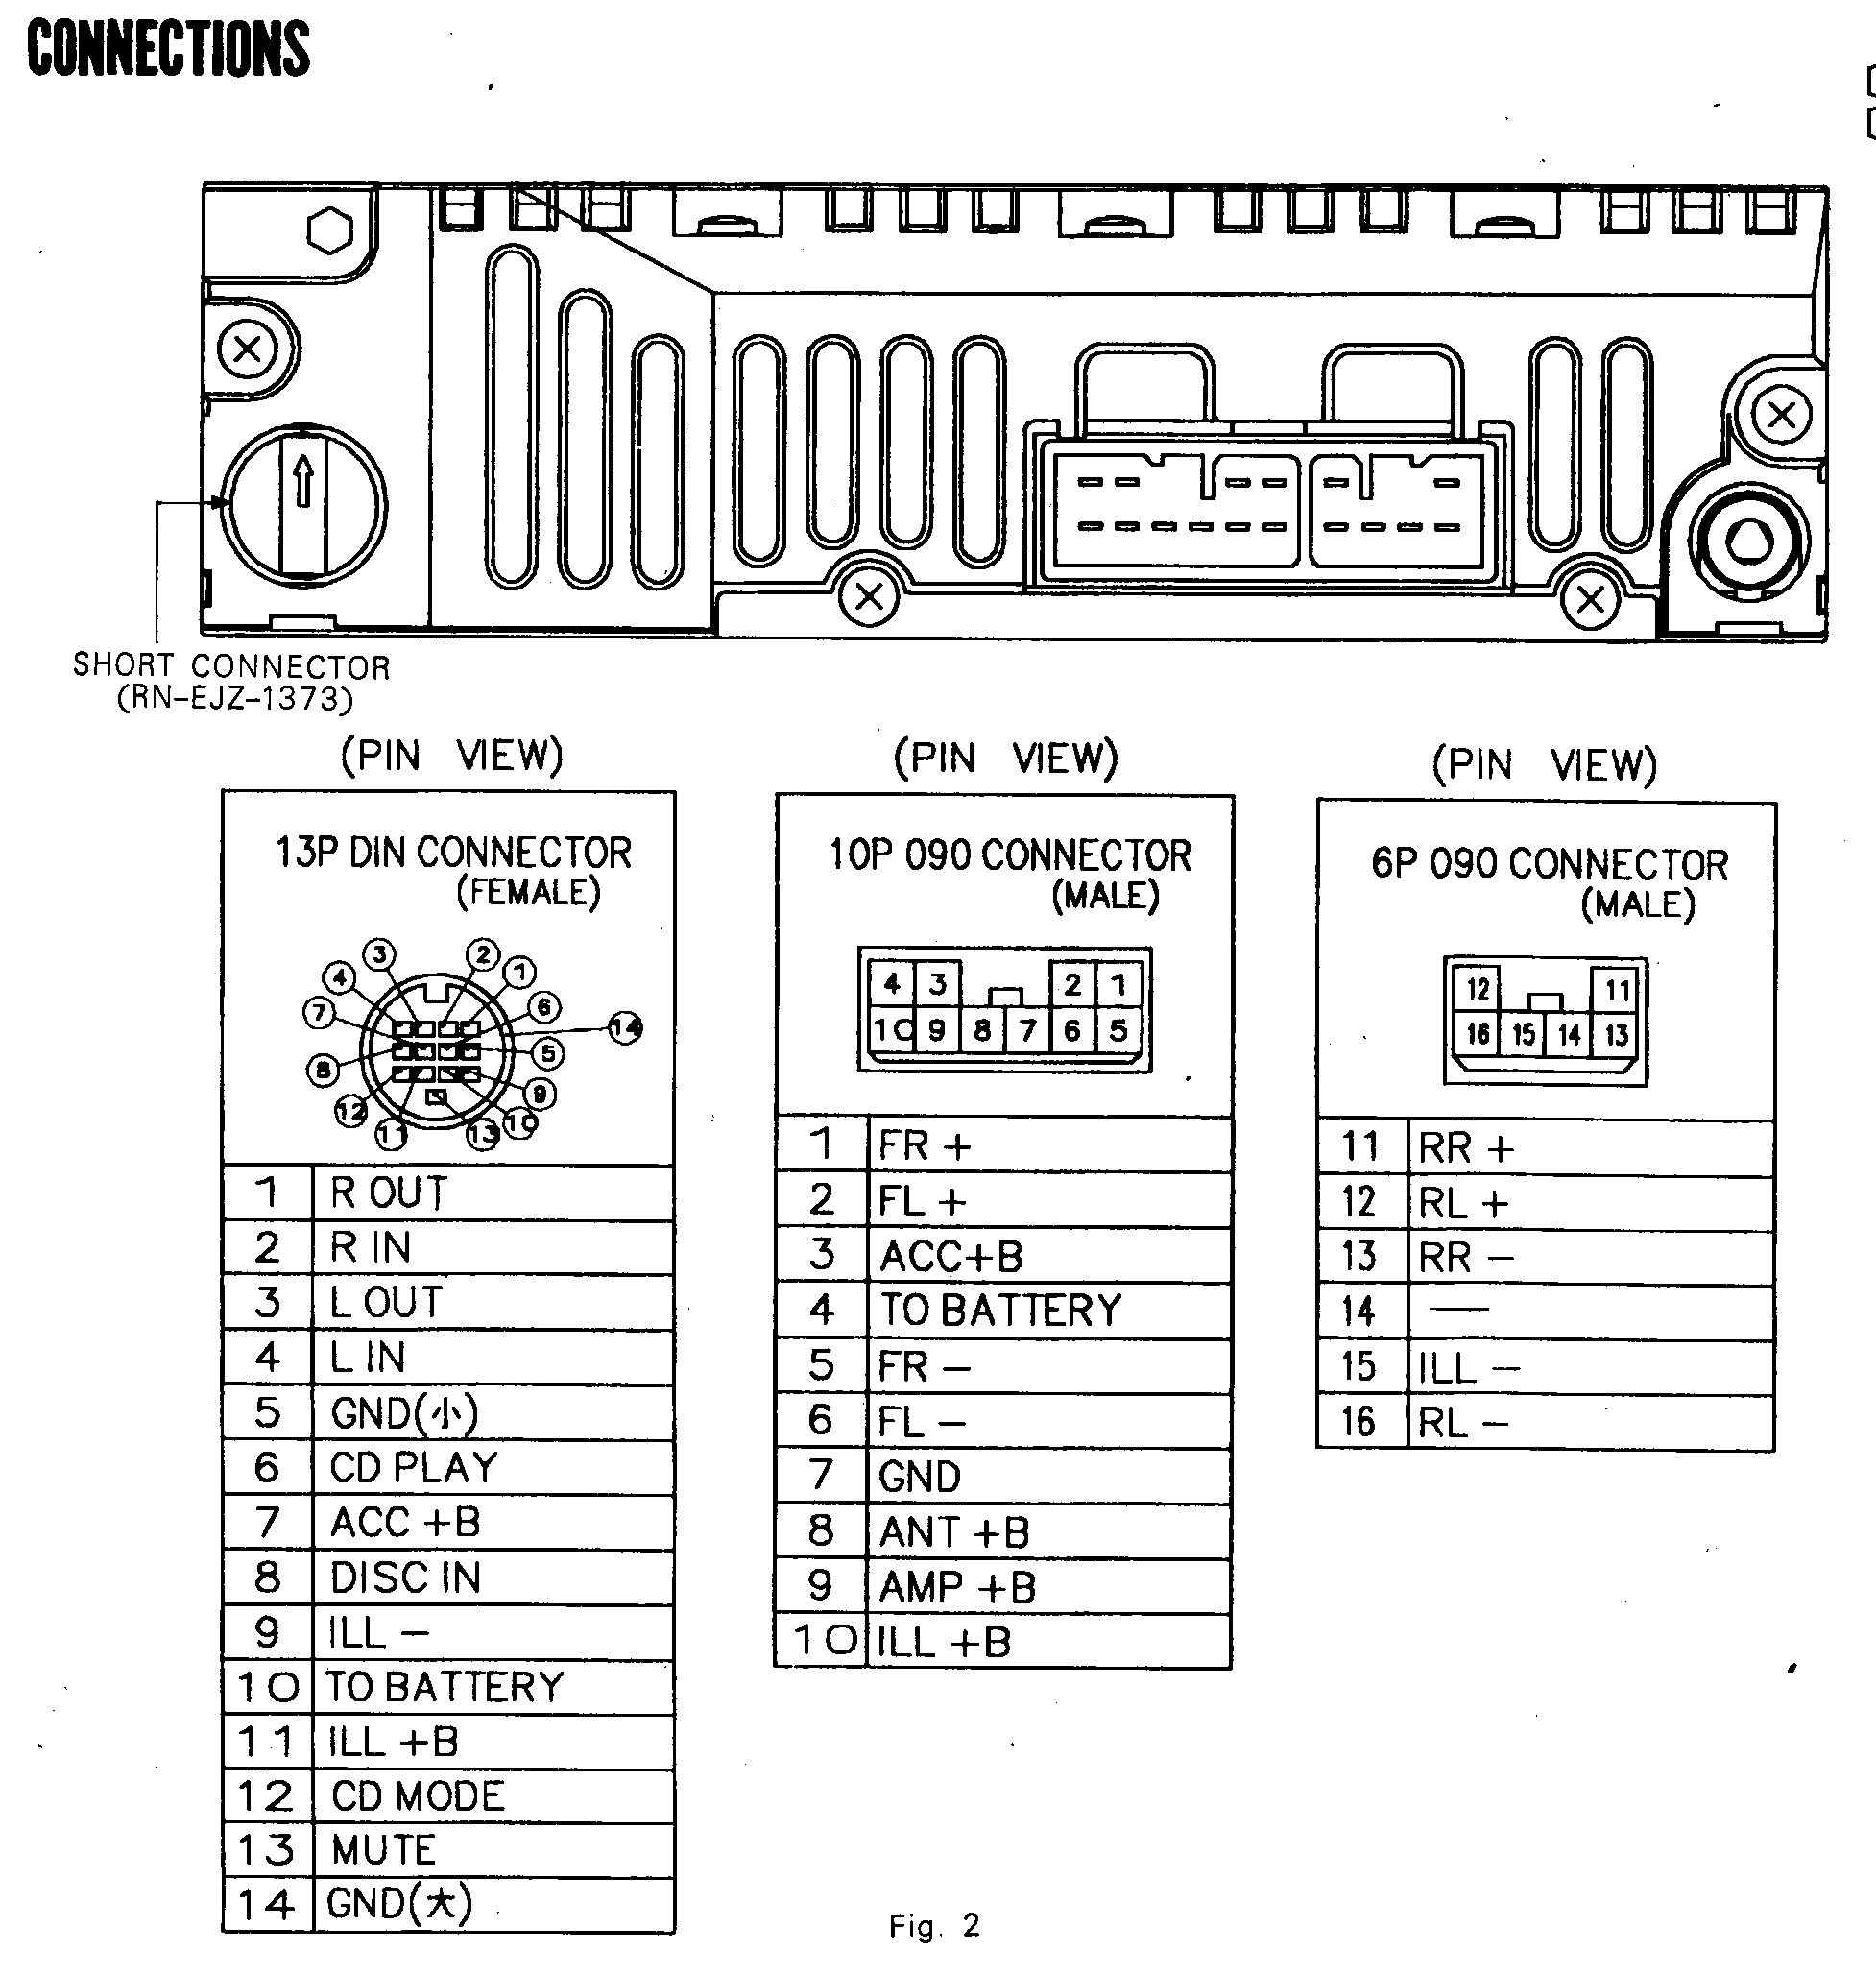 WireHarnessToy121003 car audio wire diagram codes toyota factory car stereo repair toyota wiring harness diagram at soozxer.org